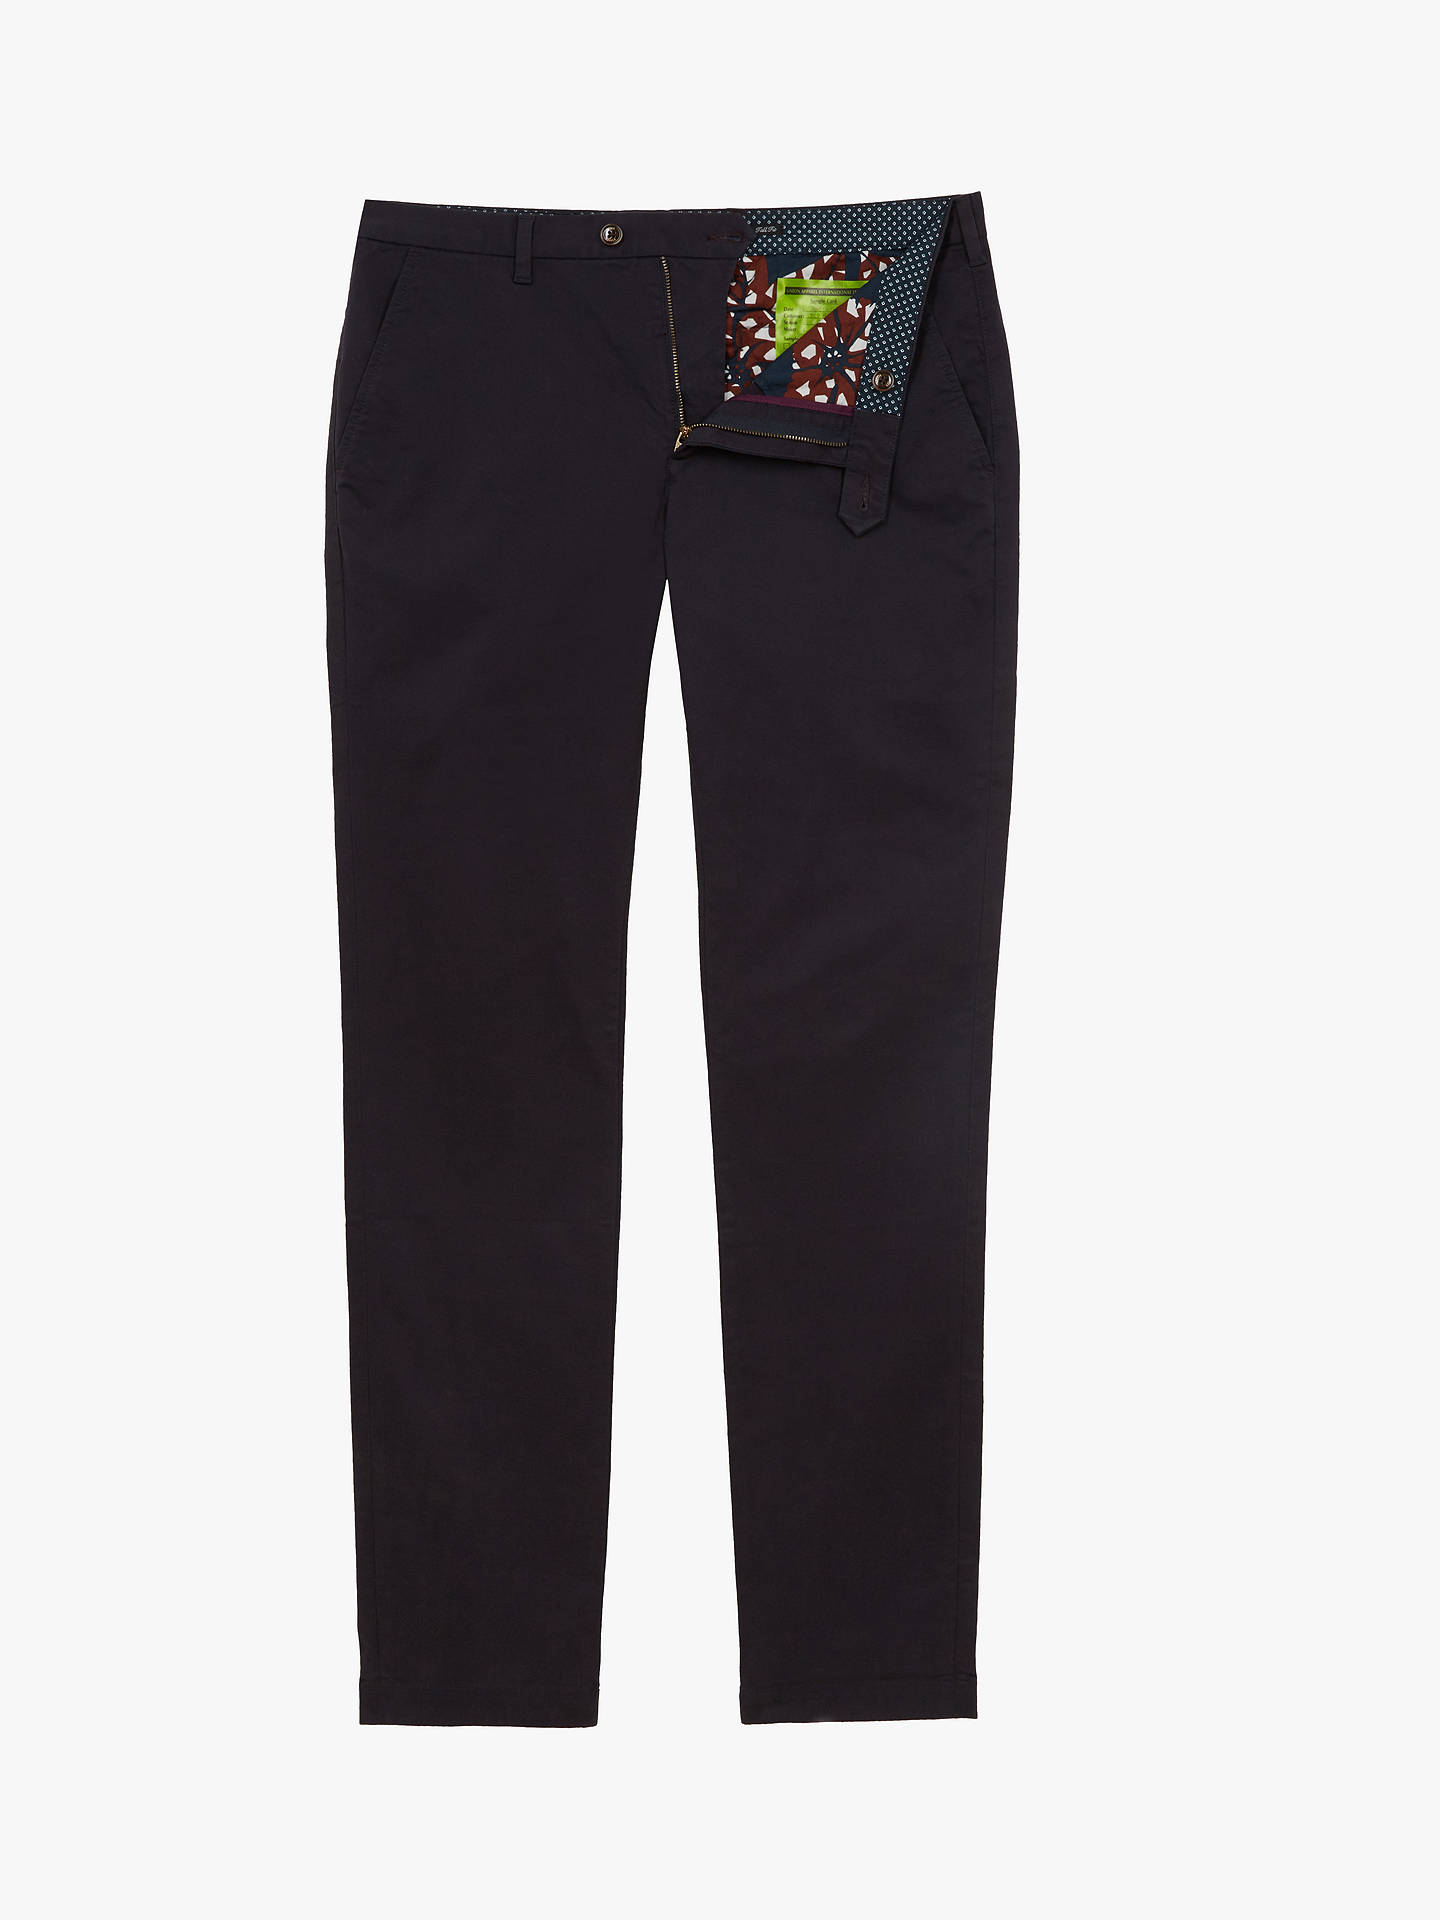 BuyTed Baker T for Tall Selebtt Slim Fit Chinos, Navy, 34L Online at johnlewis.com